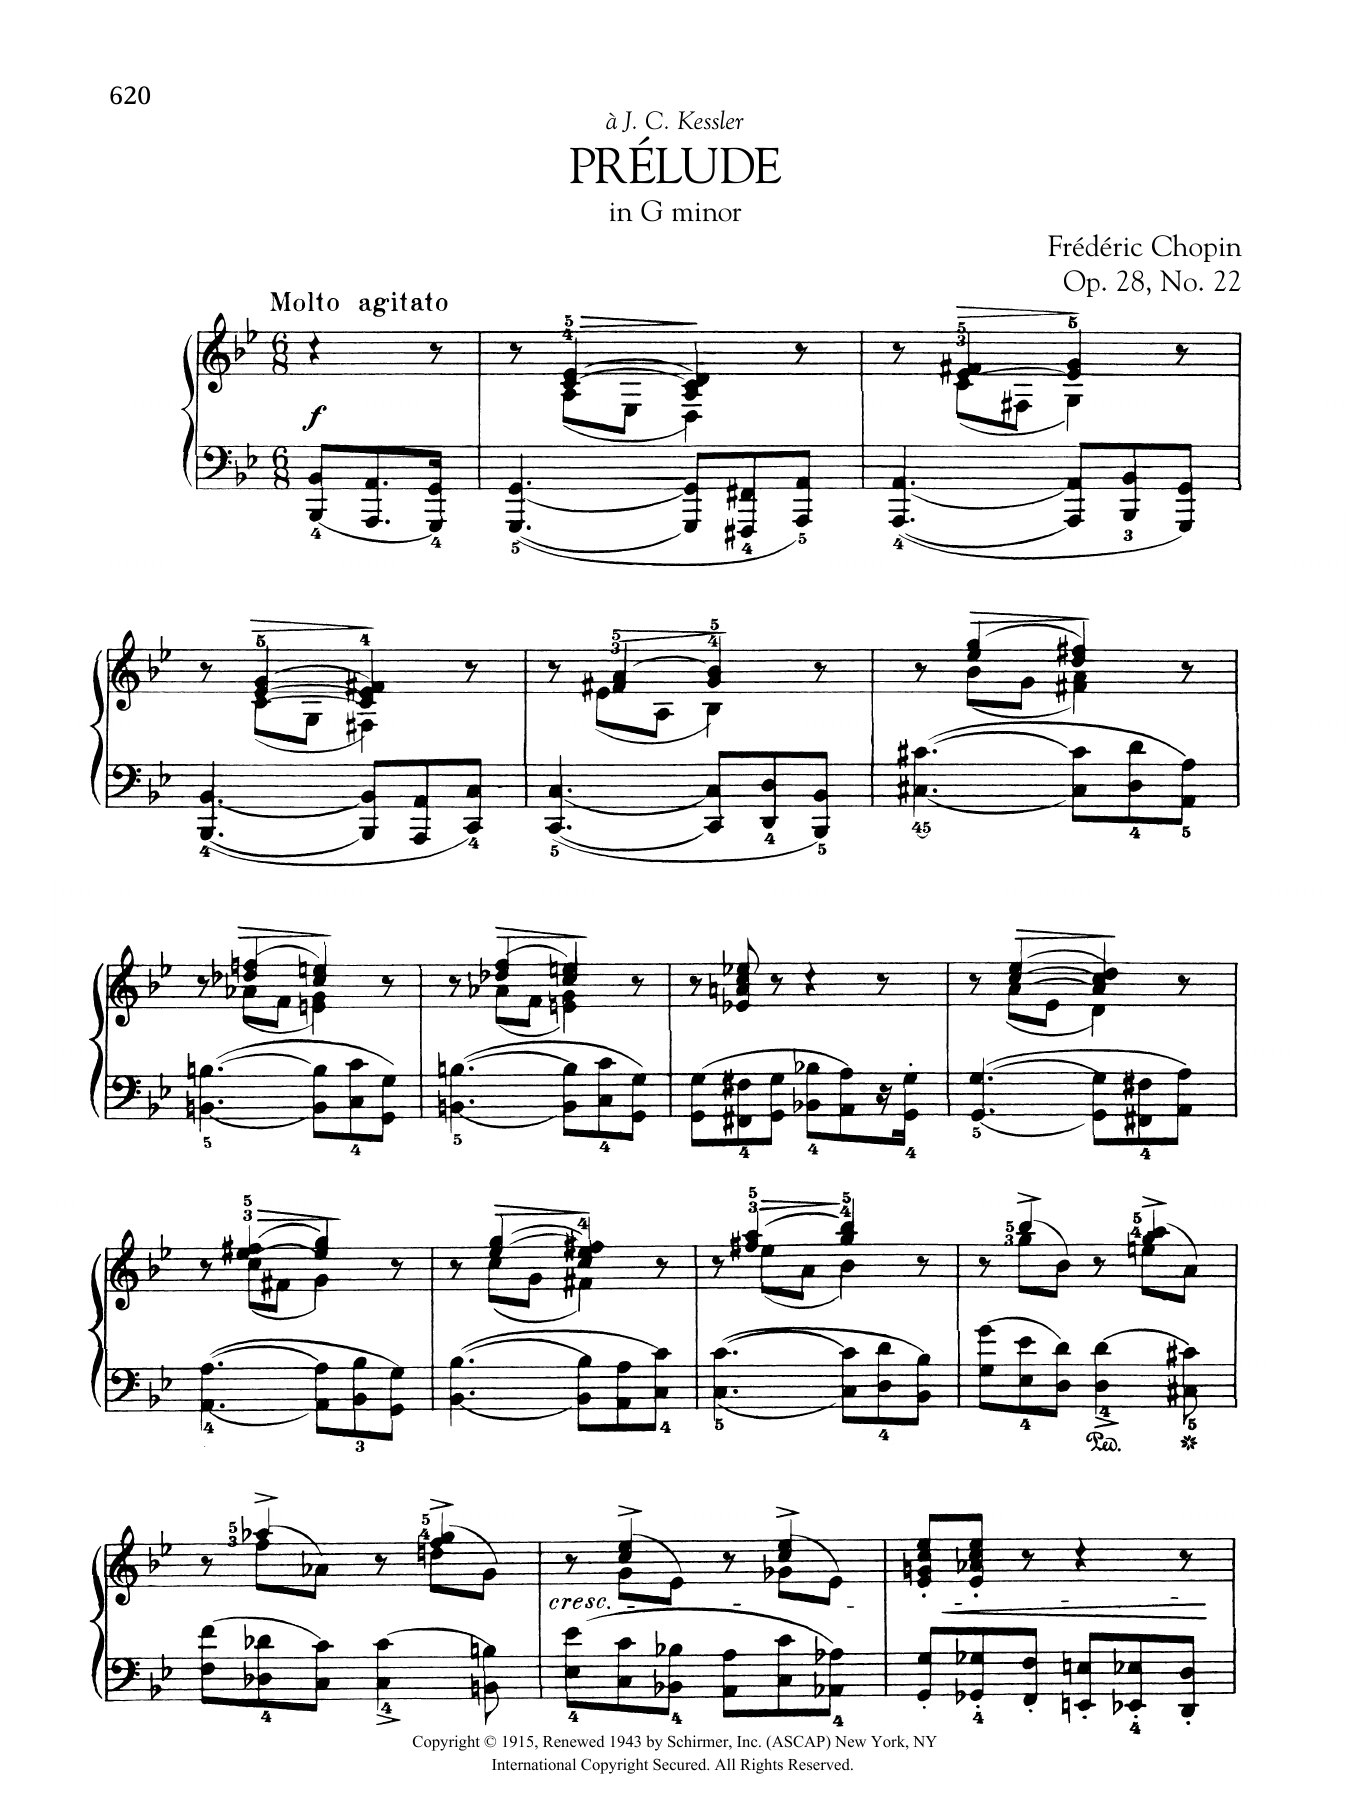 Prélude in G minor, Op. 28, No. 22